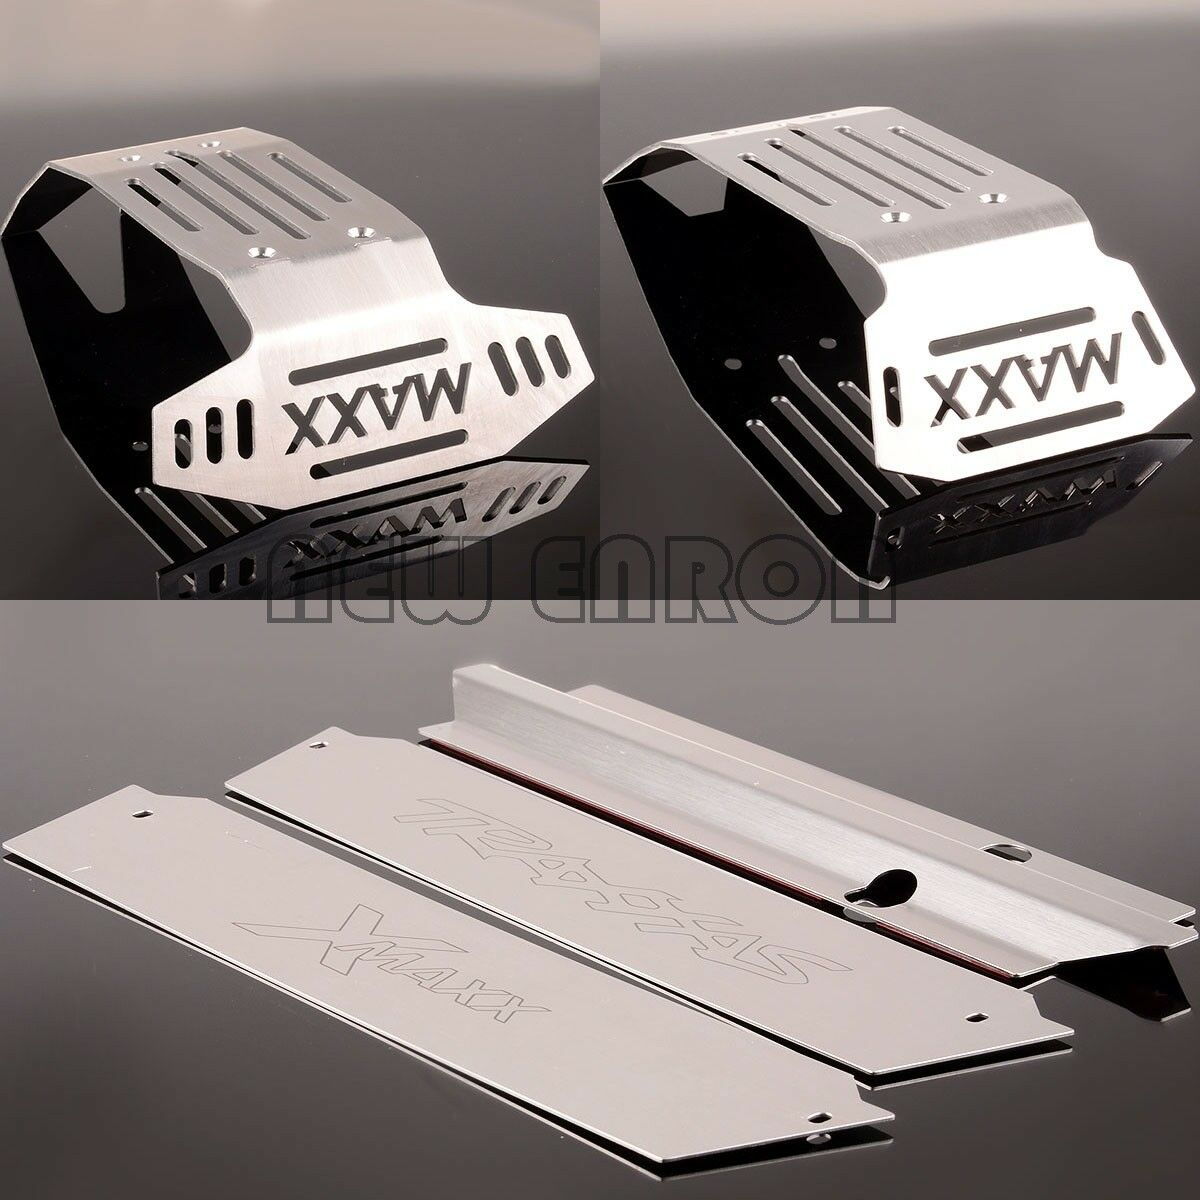 RC Hollow Stainless Steel Chassis Armor F&R Skid Plate 1 5 Traxxas X-Maxx XMAXX